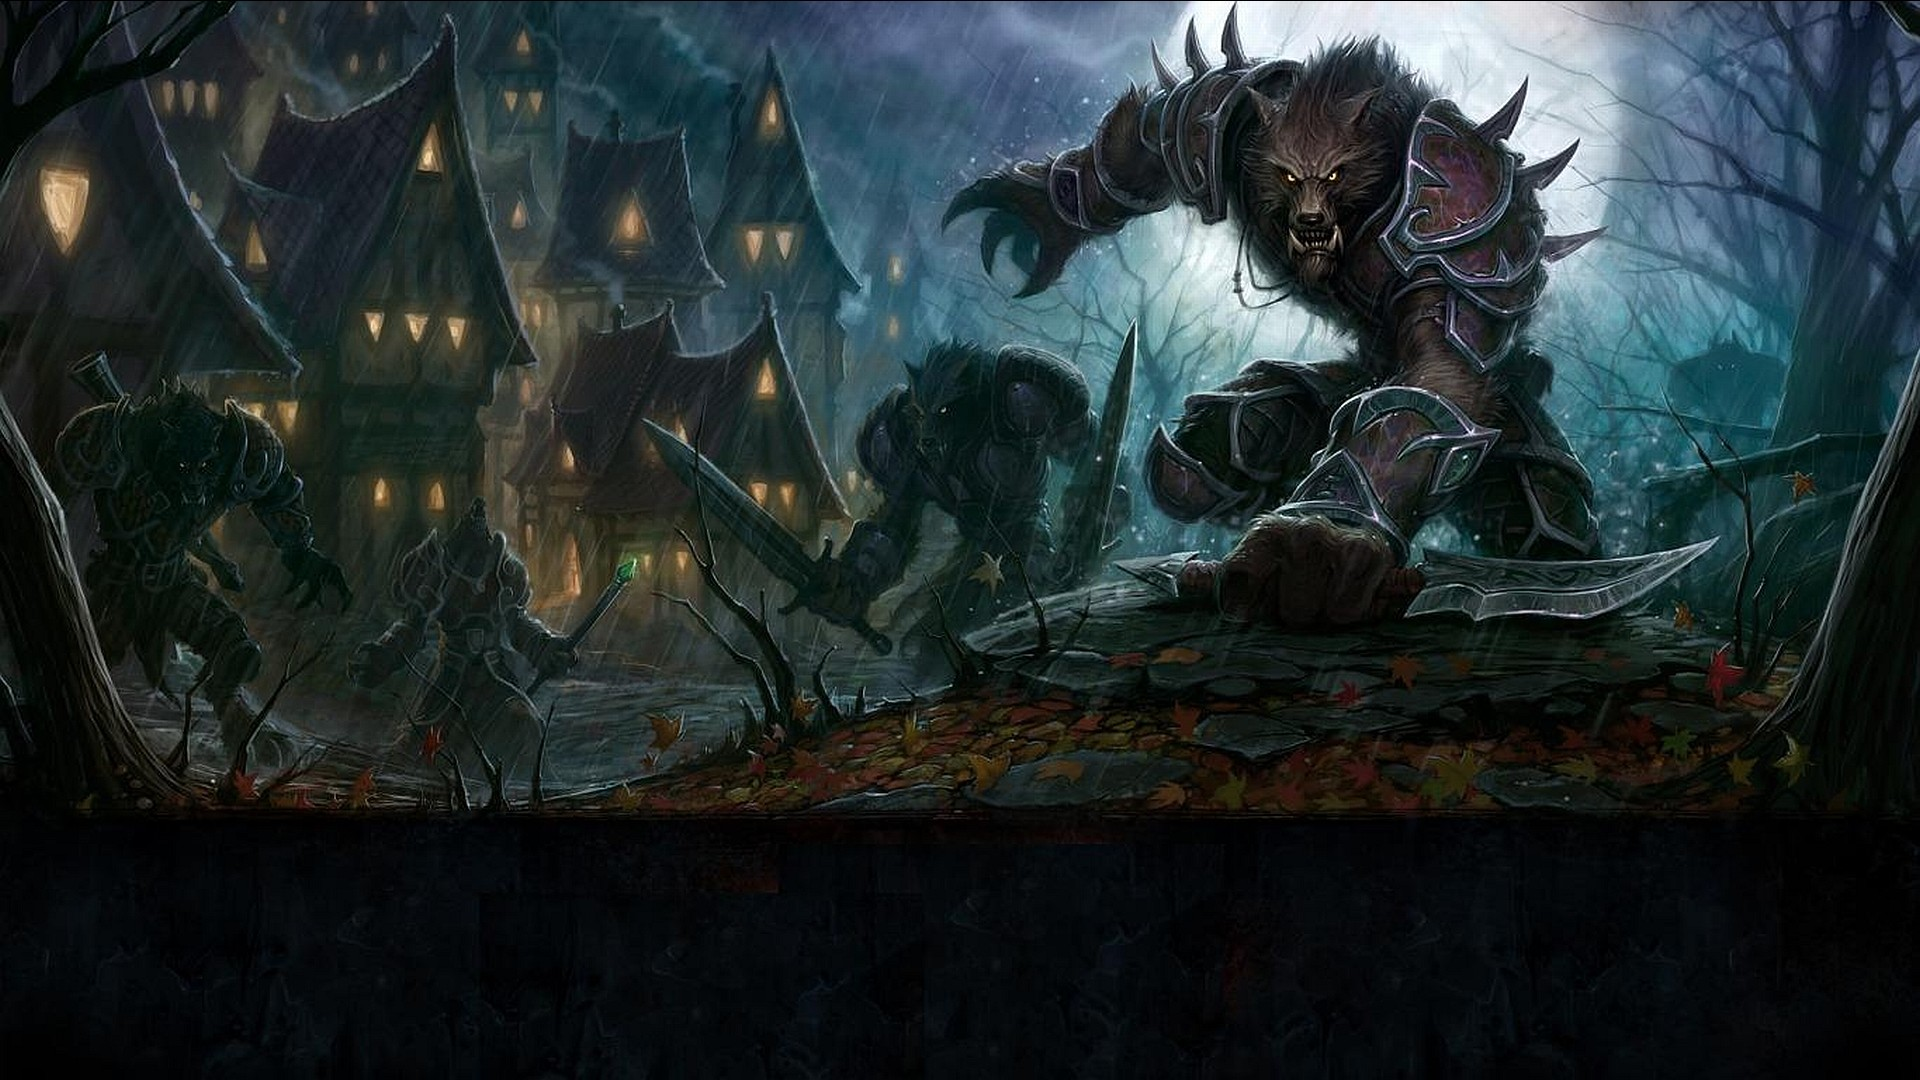 Werewolf Backgrounds 64 Images